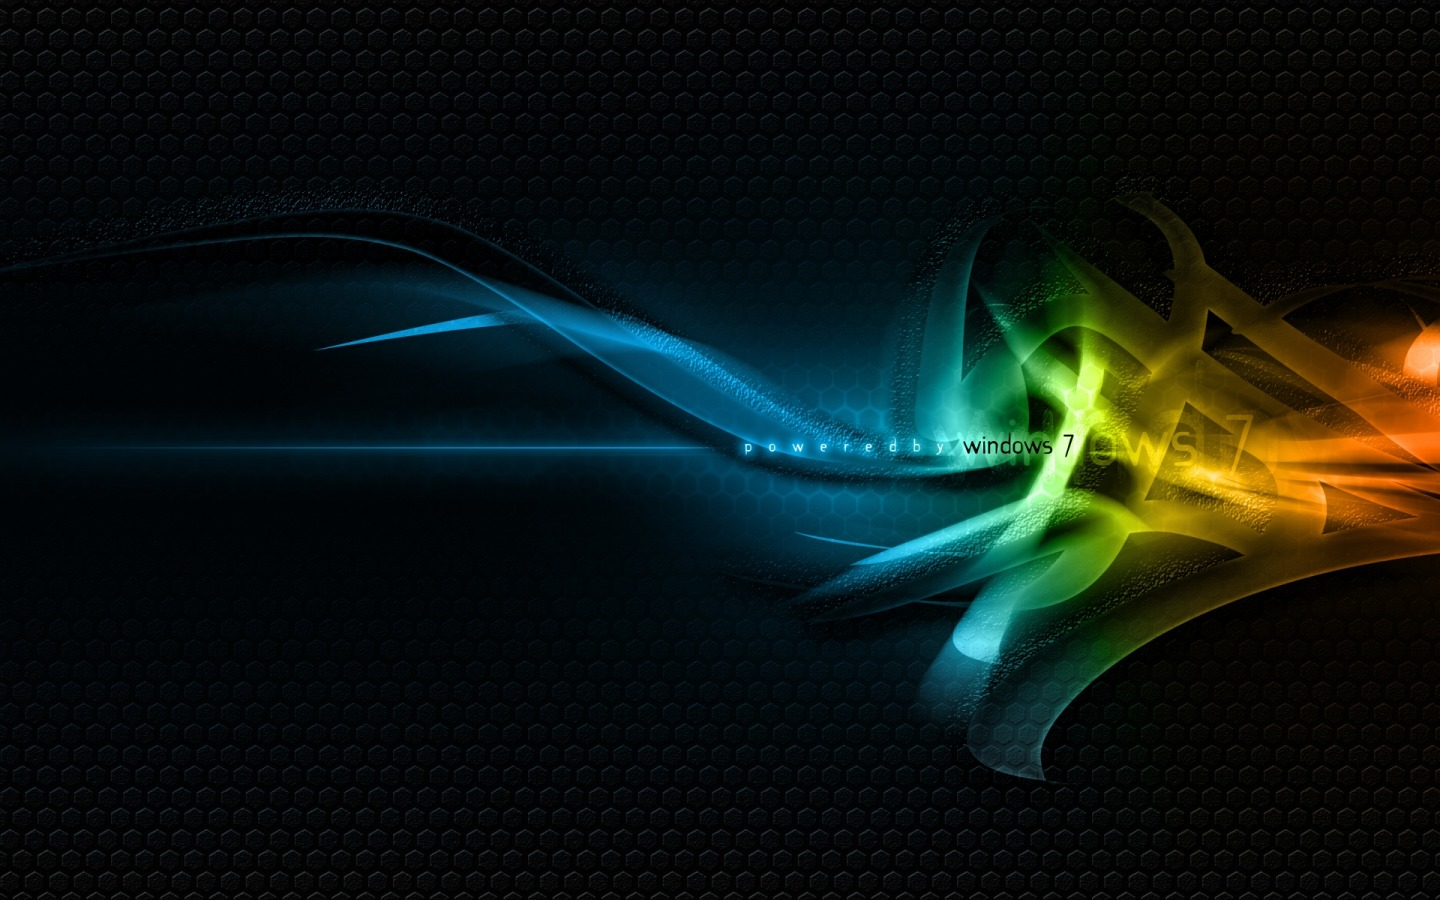 Black Desktop Wallpaper Windows 7